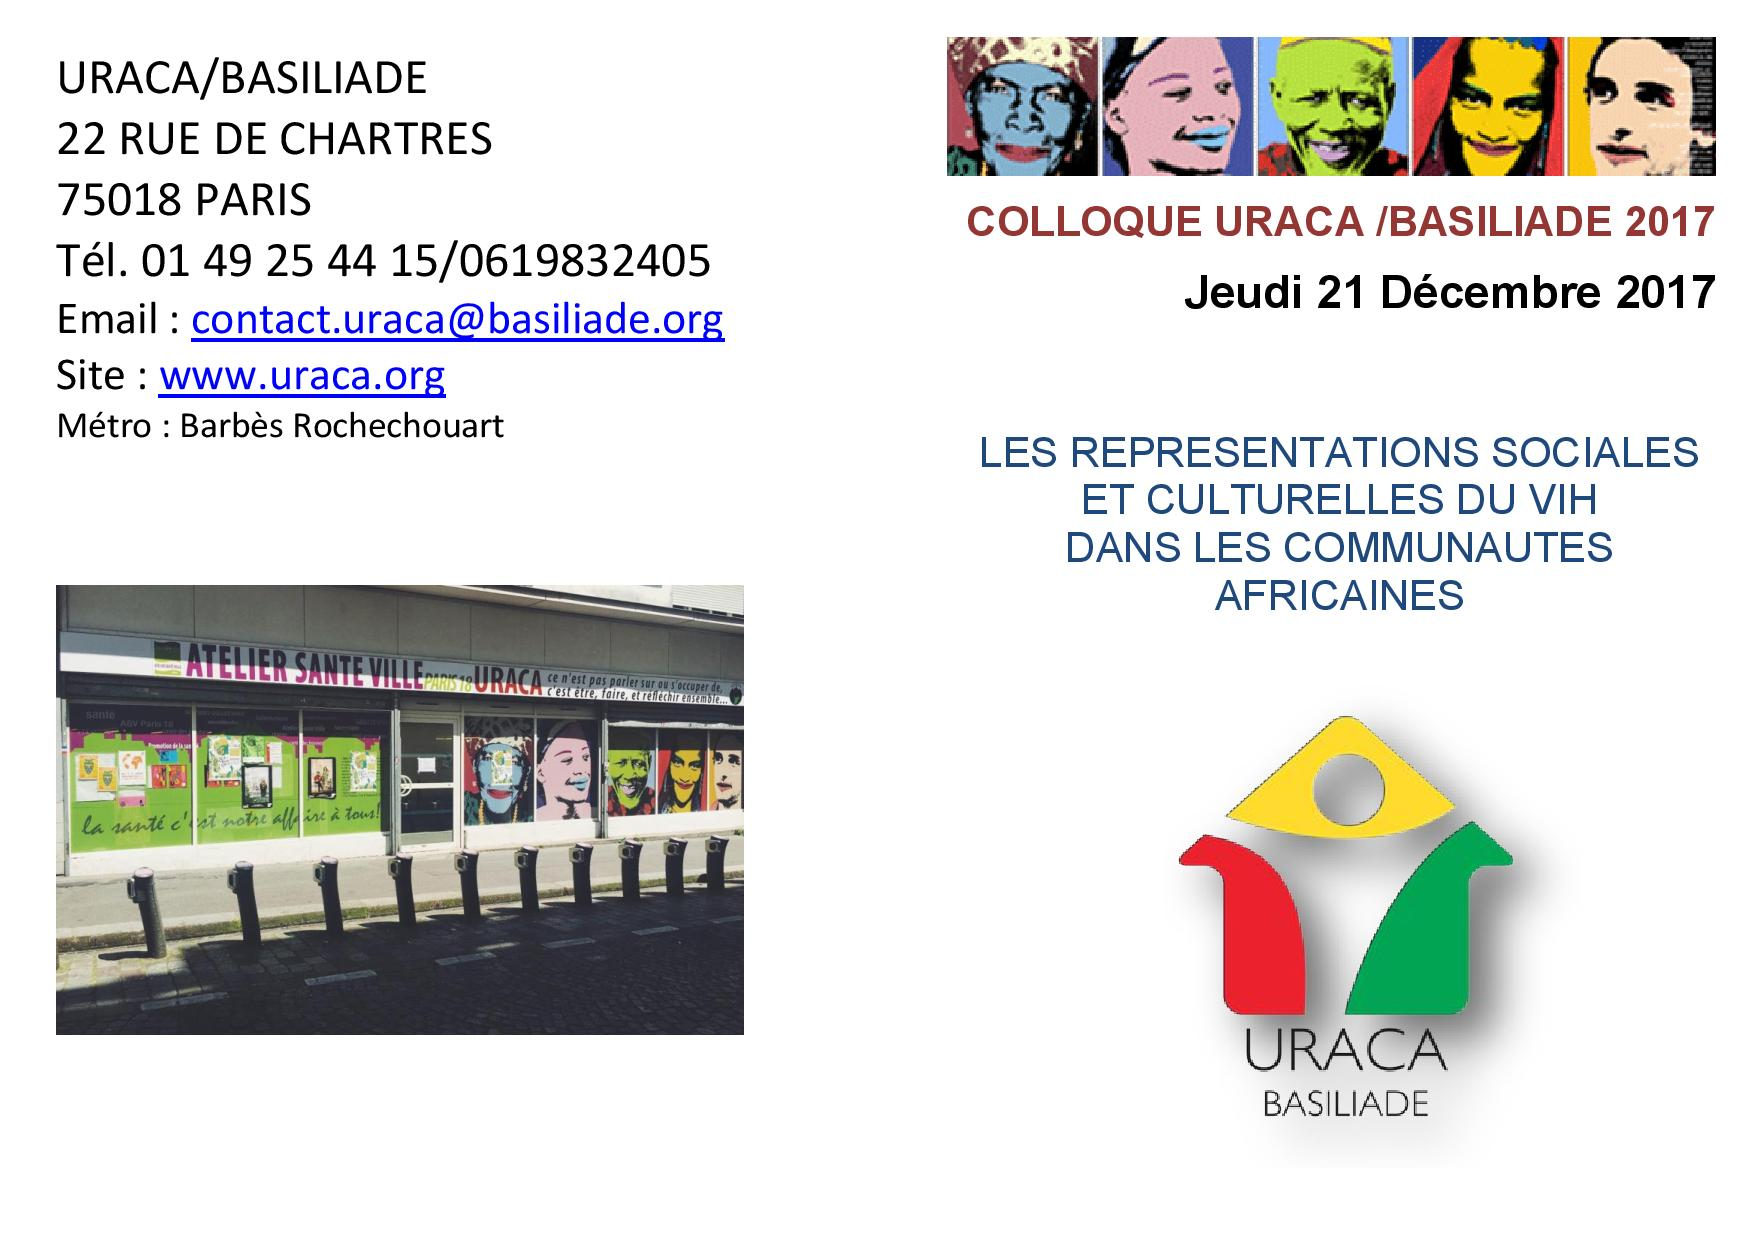 Sites de rencontres libres africains